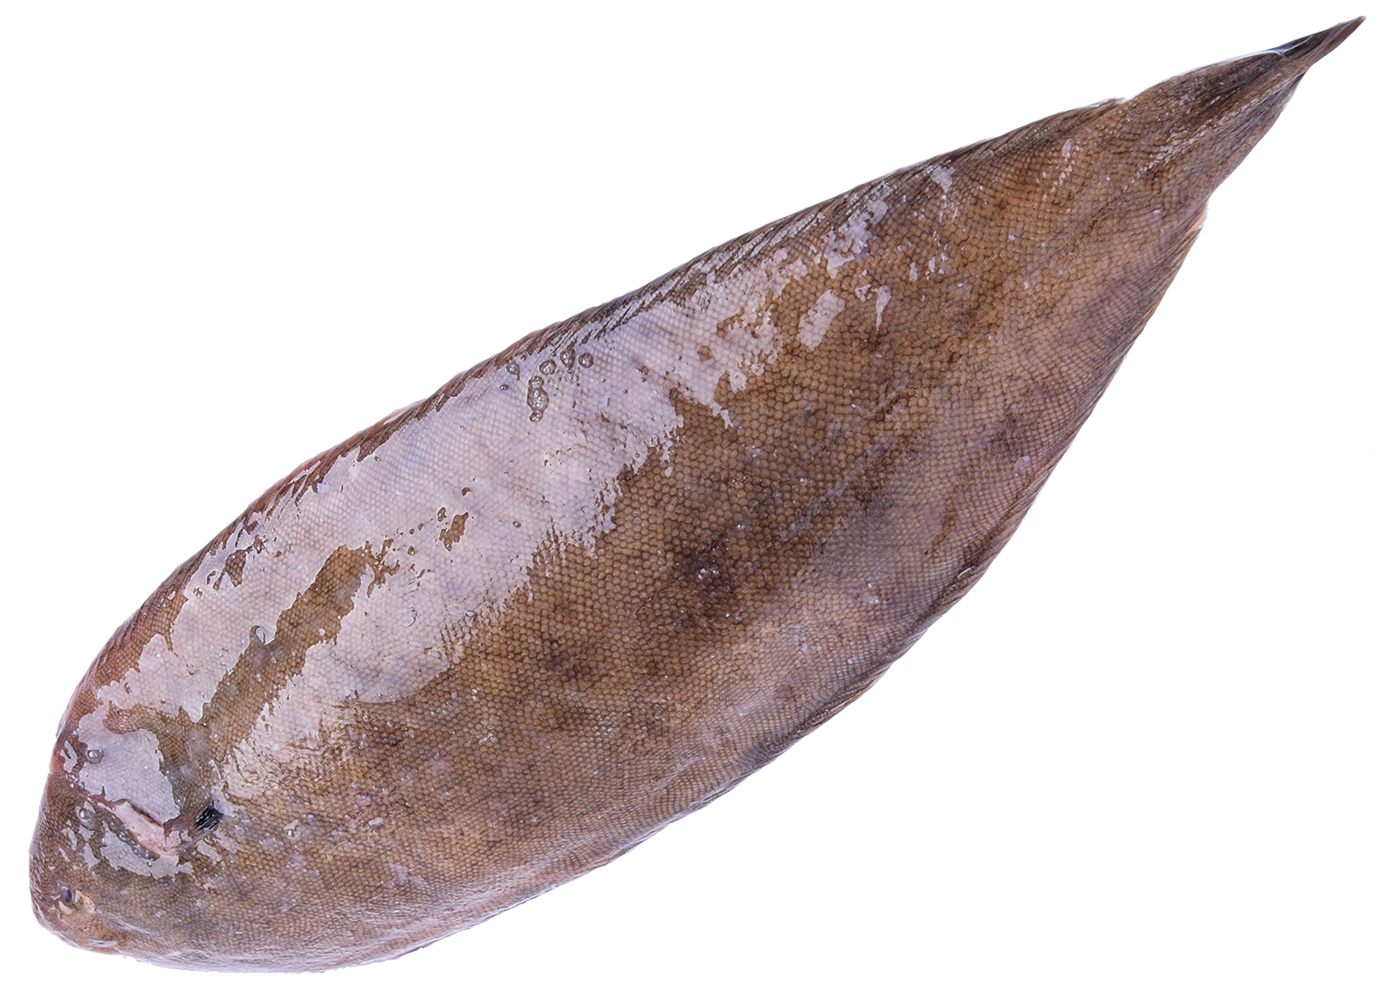 Productafbeelding DOVER SOLE WITH SKIN 150-220GR